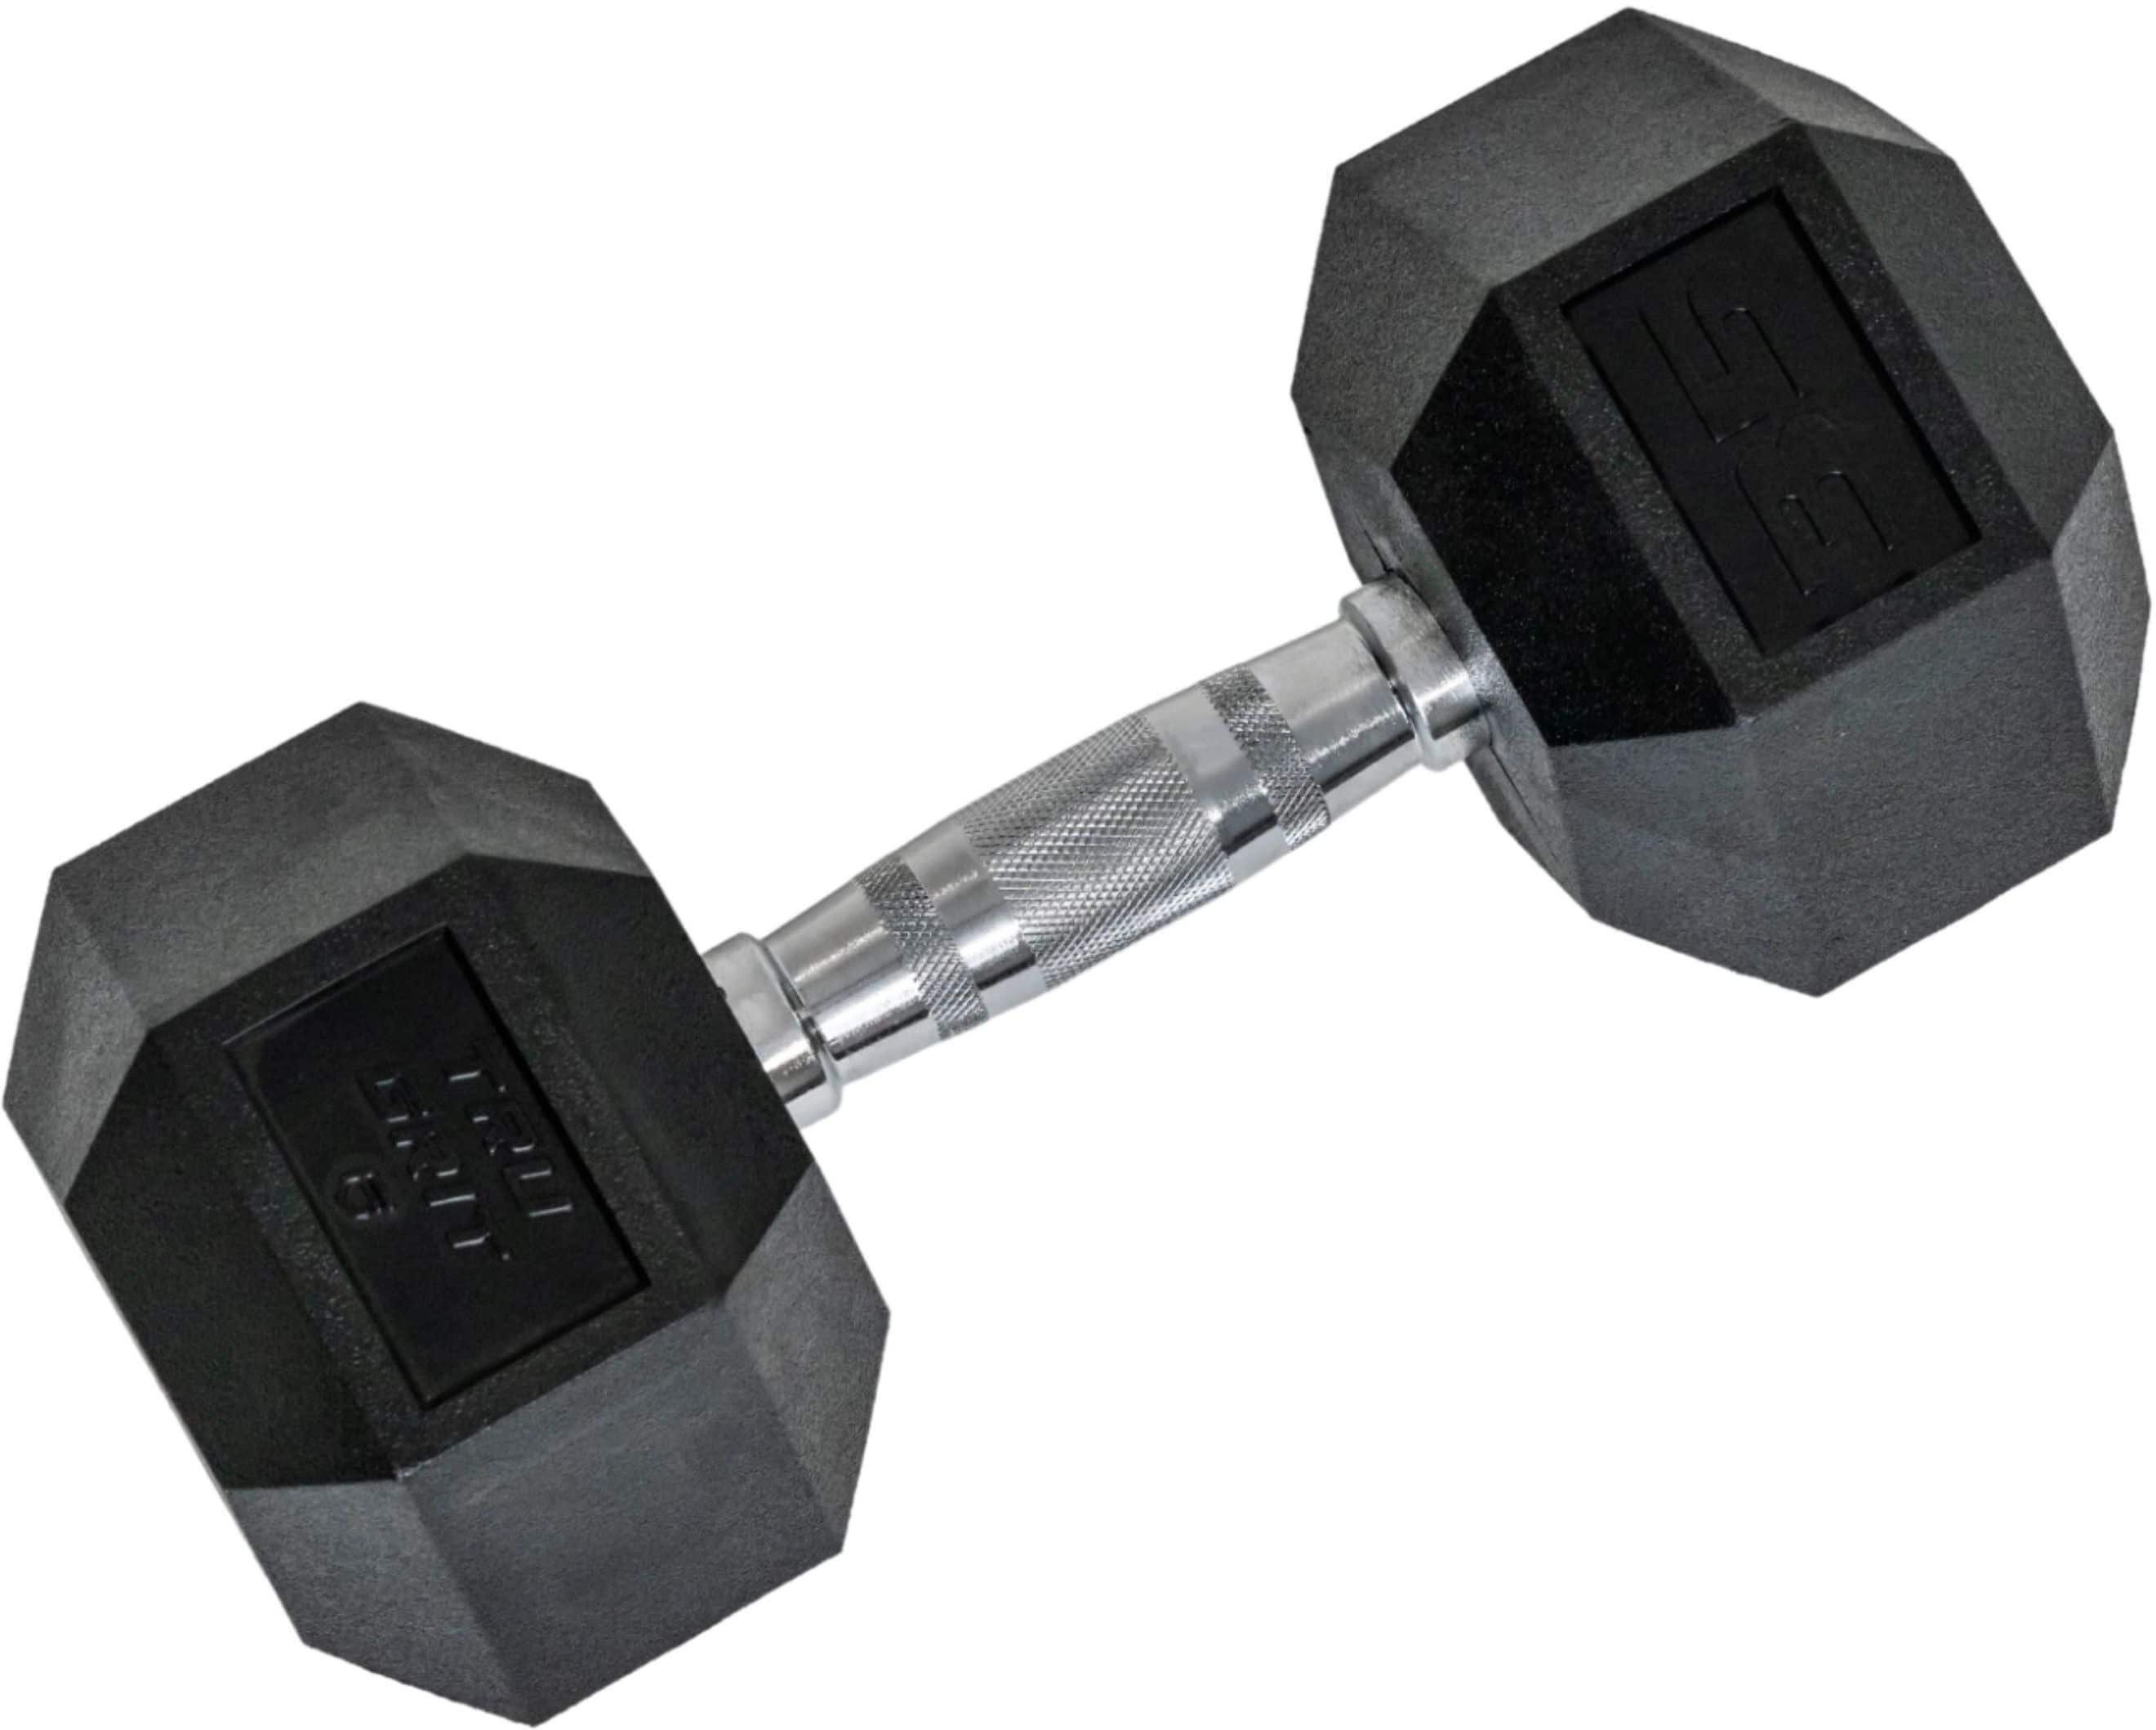 Tru Grit 35-lb Hex Elite Dumbbell and More Available - $45